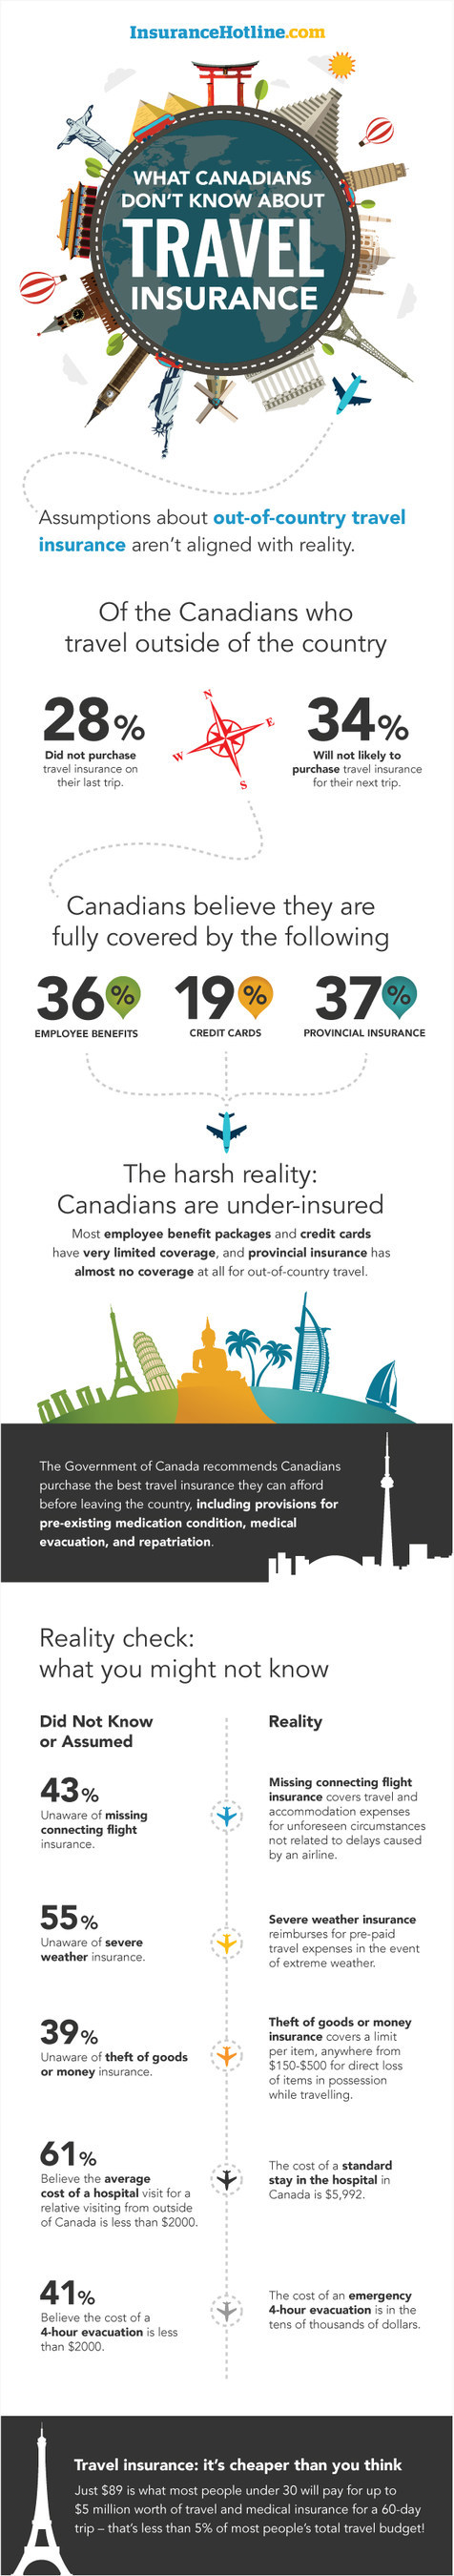 Most Canadians leave their families exposed when it comes to travel insurance, national survey reveals (CNW Group/InsuranceHotline.com)